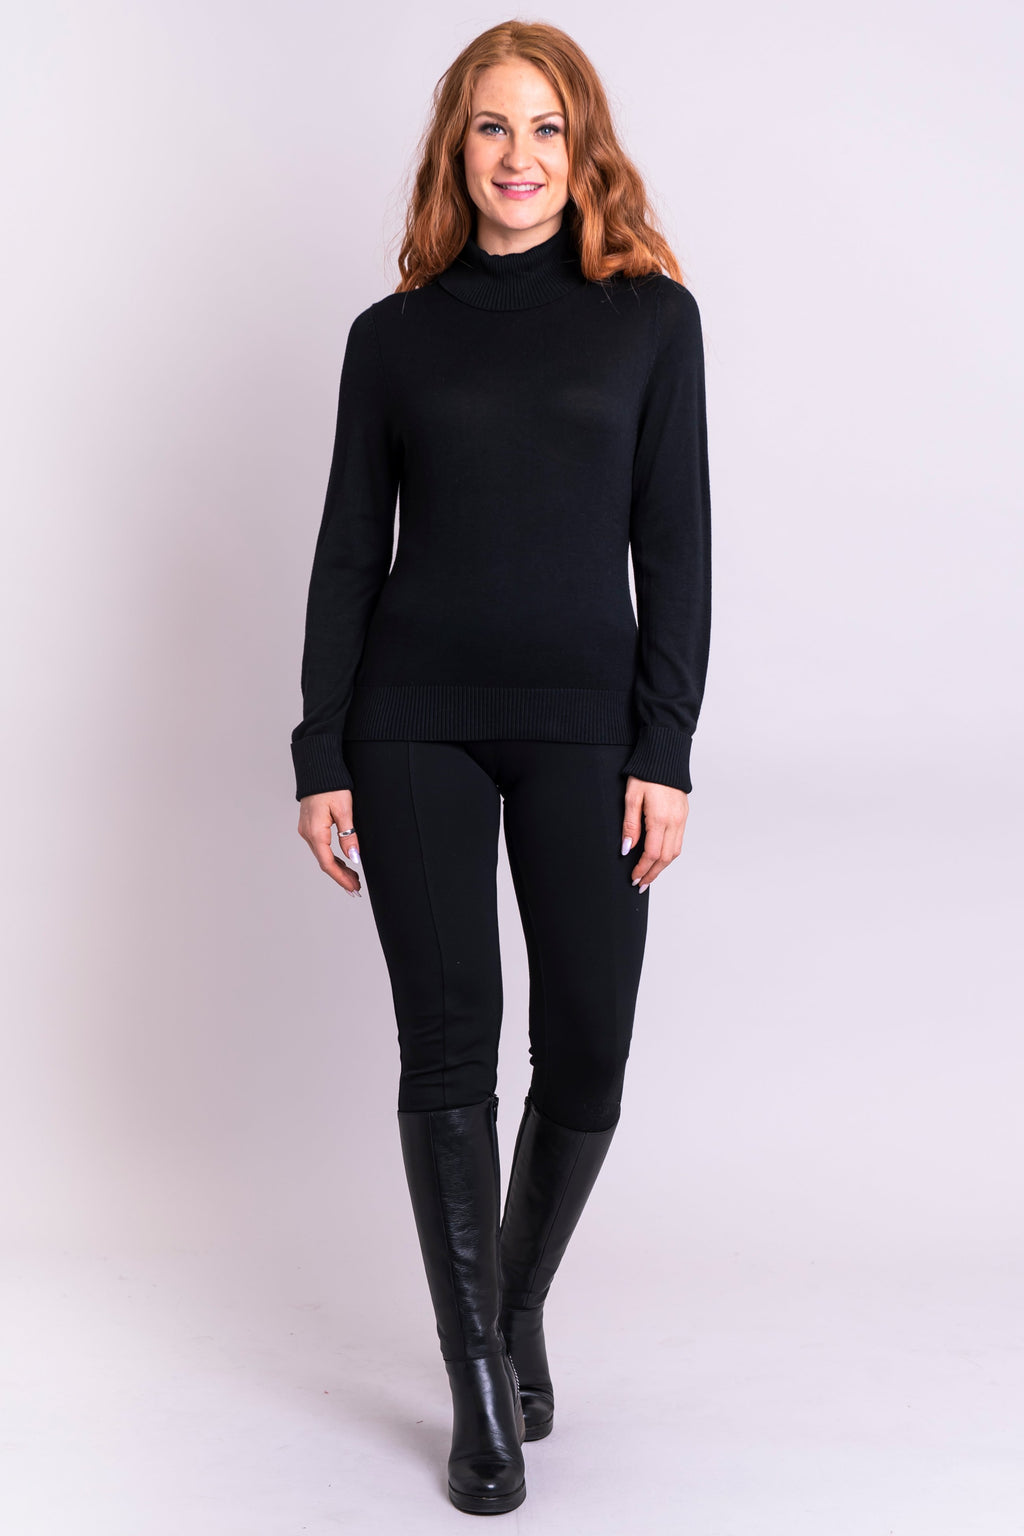 Taylor Sweater, Black, Bamboo Cotton - Blue Sky Clothing Co